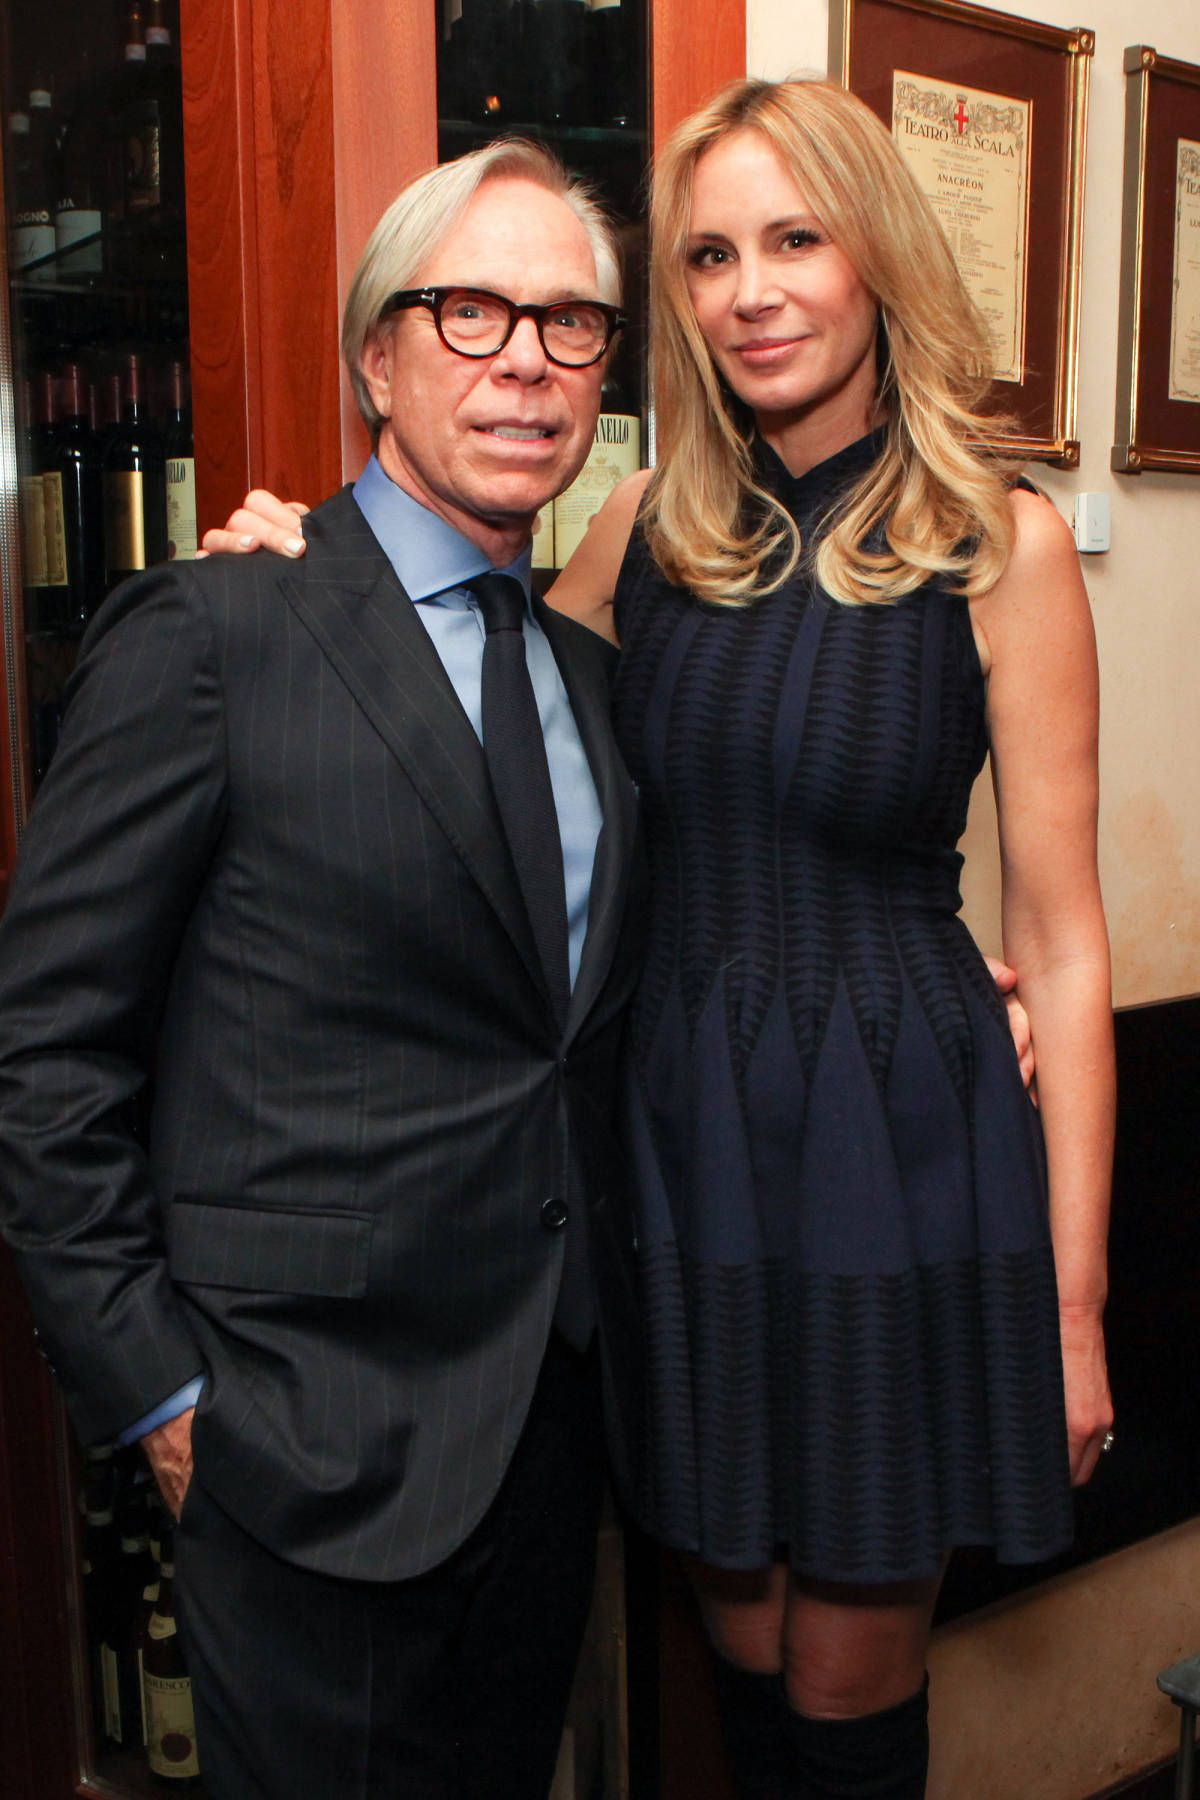 Last Nights Parties: Tommy Hilfiger Honors Vince Camuto, Jame Francos New Flick More